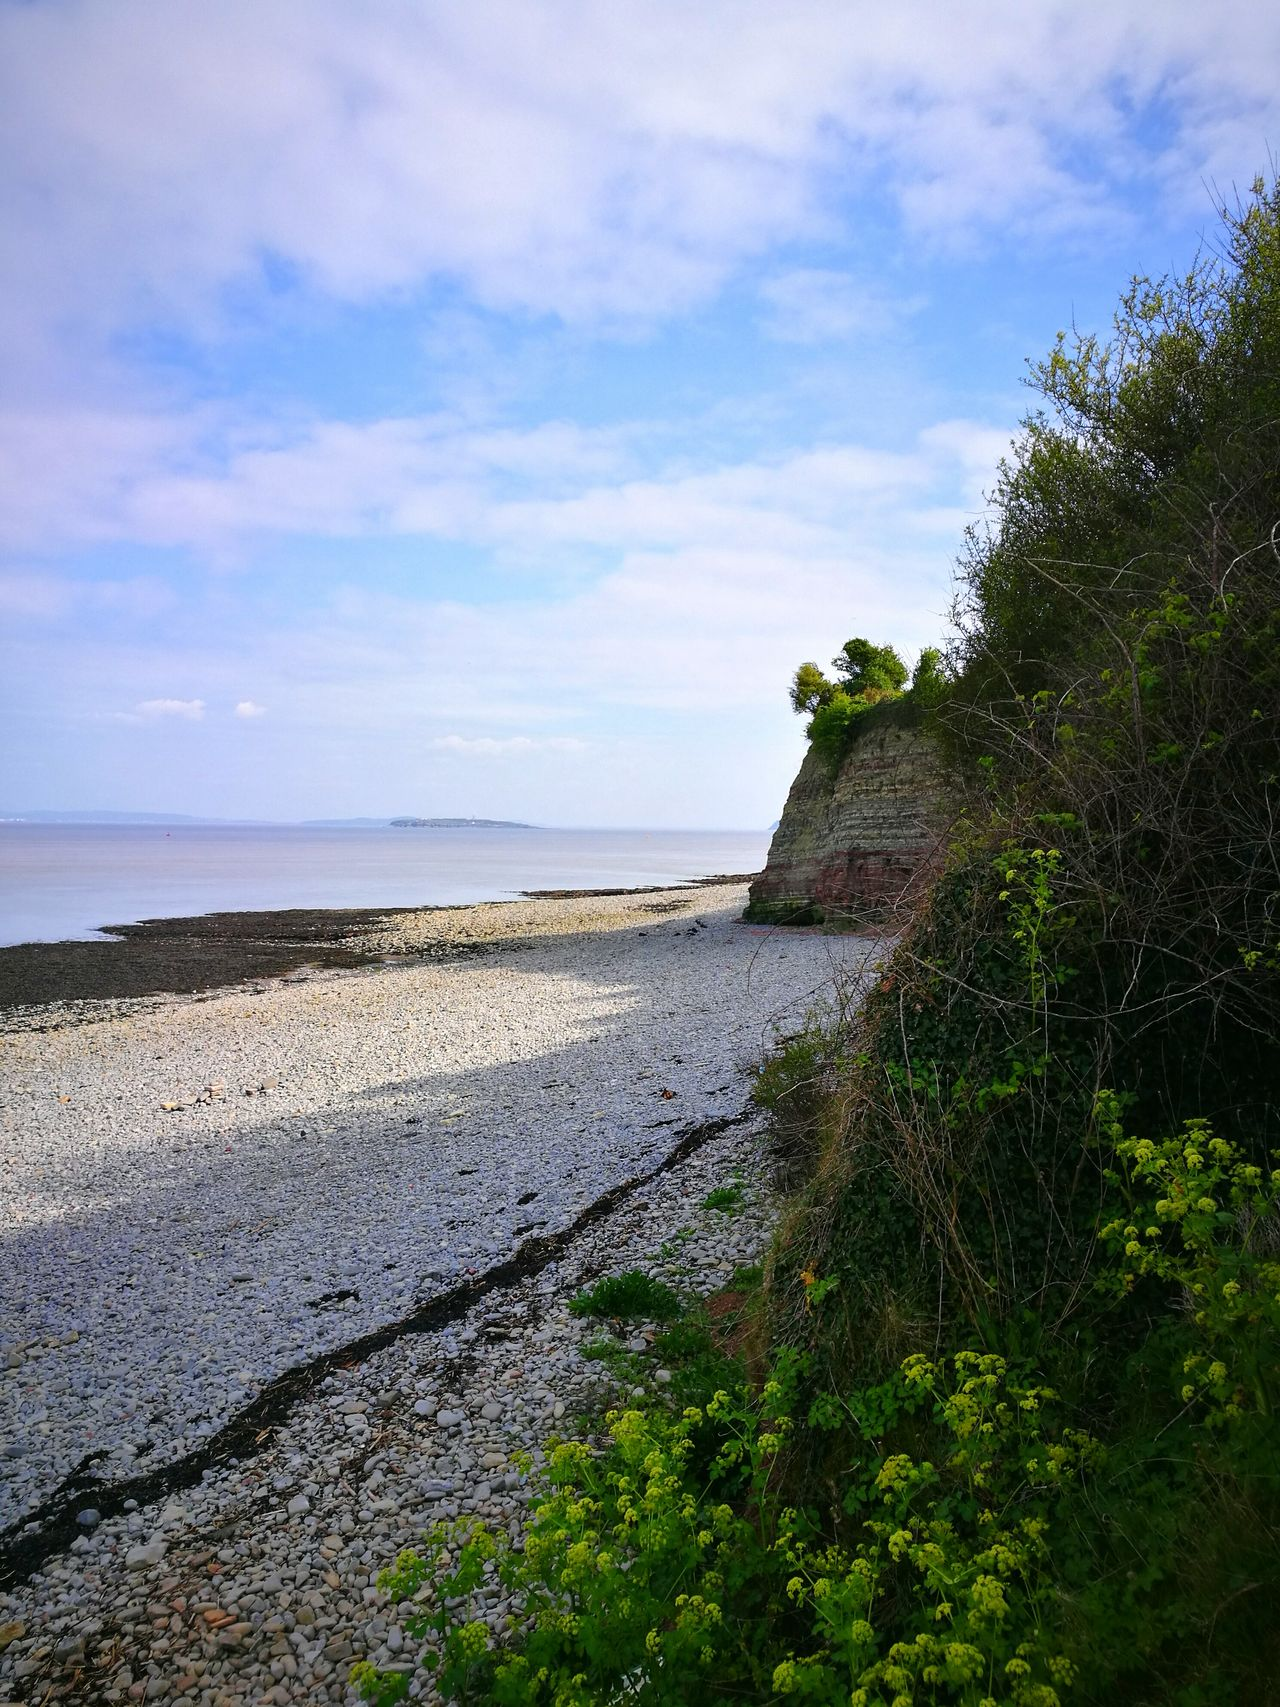 Afternoon Light Lets Go! Wonderful Moment Wales UK Wales❤ Beachlovers Fresh Air.  Beach Walk Cardiff, Lavernock Point Penarth United Kingdom Fresh Air.  Beachphotography Walking On The Beach